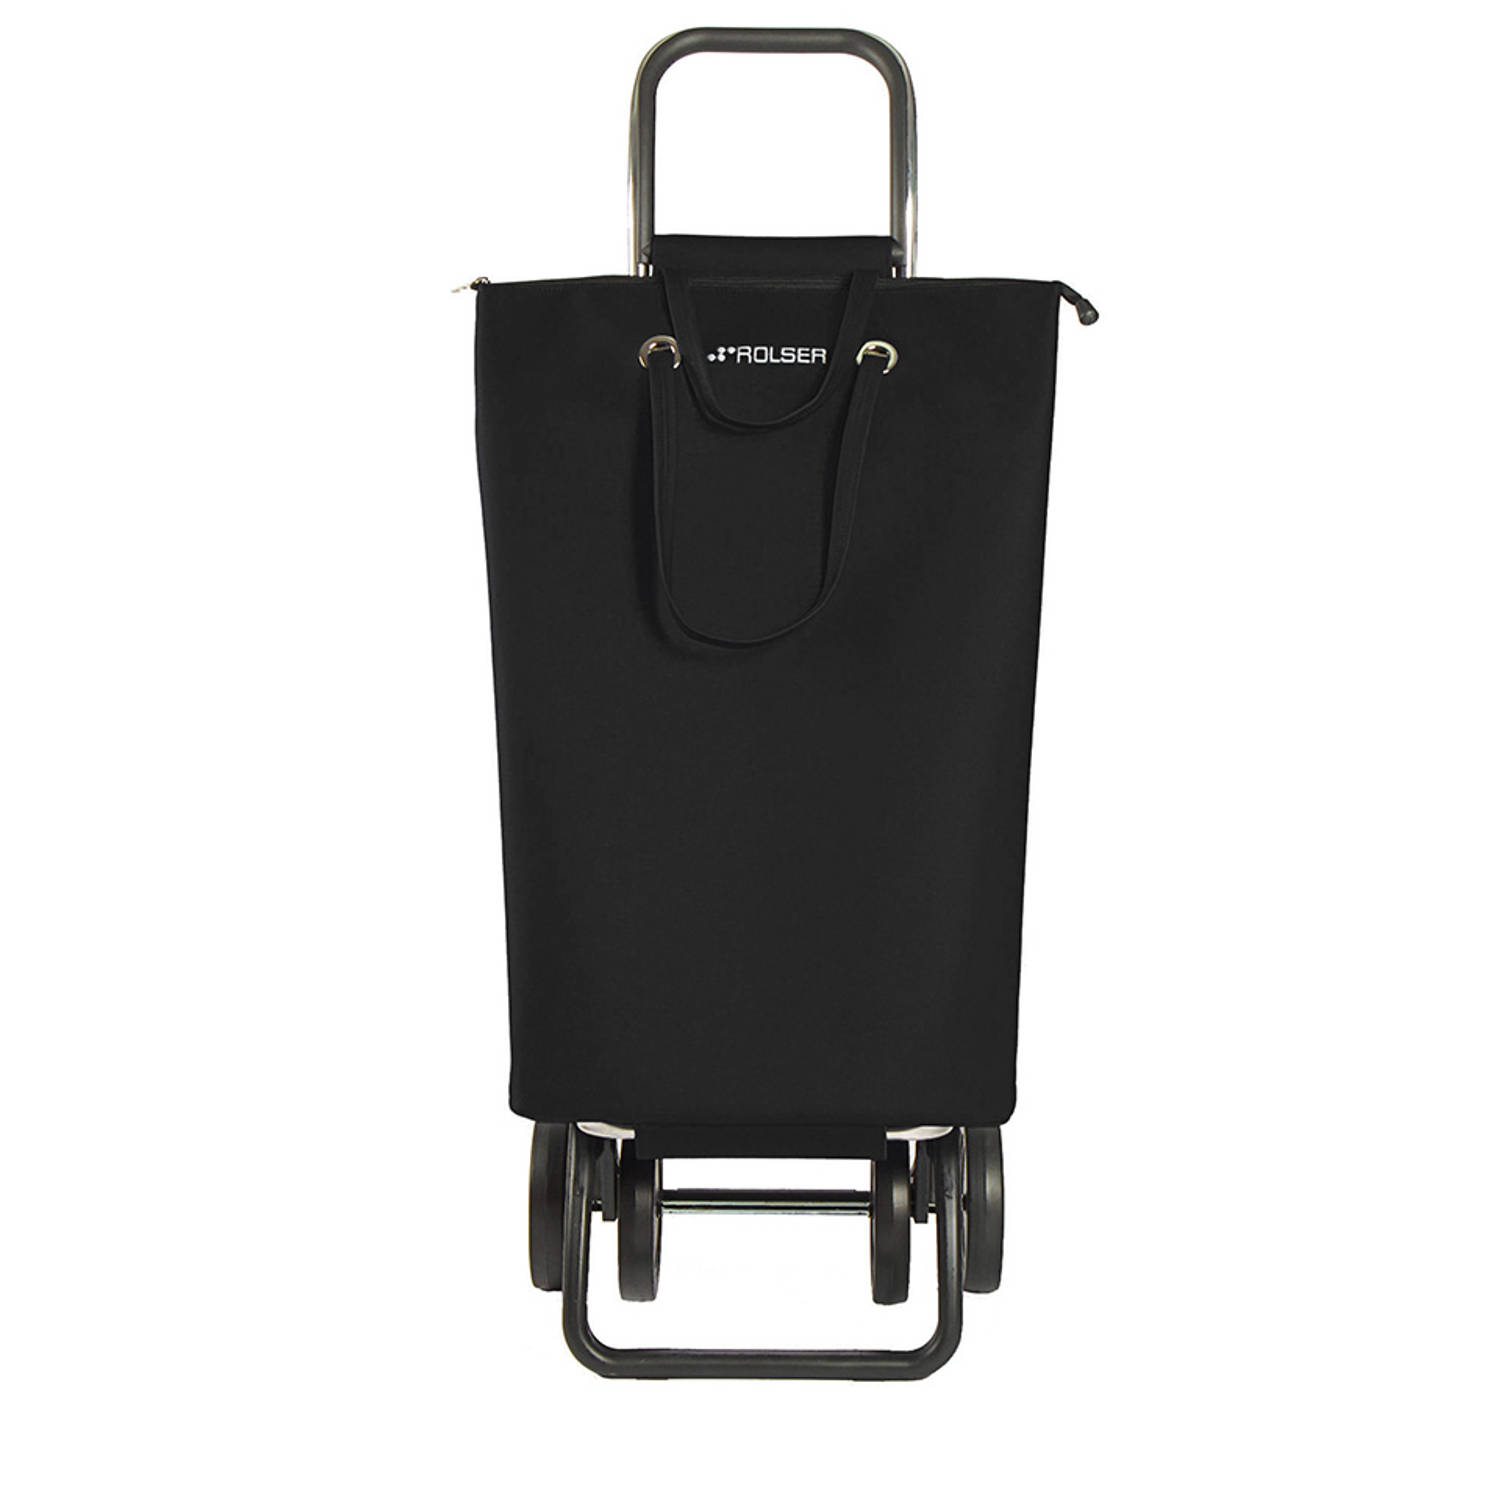 Rolser Super Bag Dos + 2 trolley - zwart